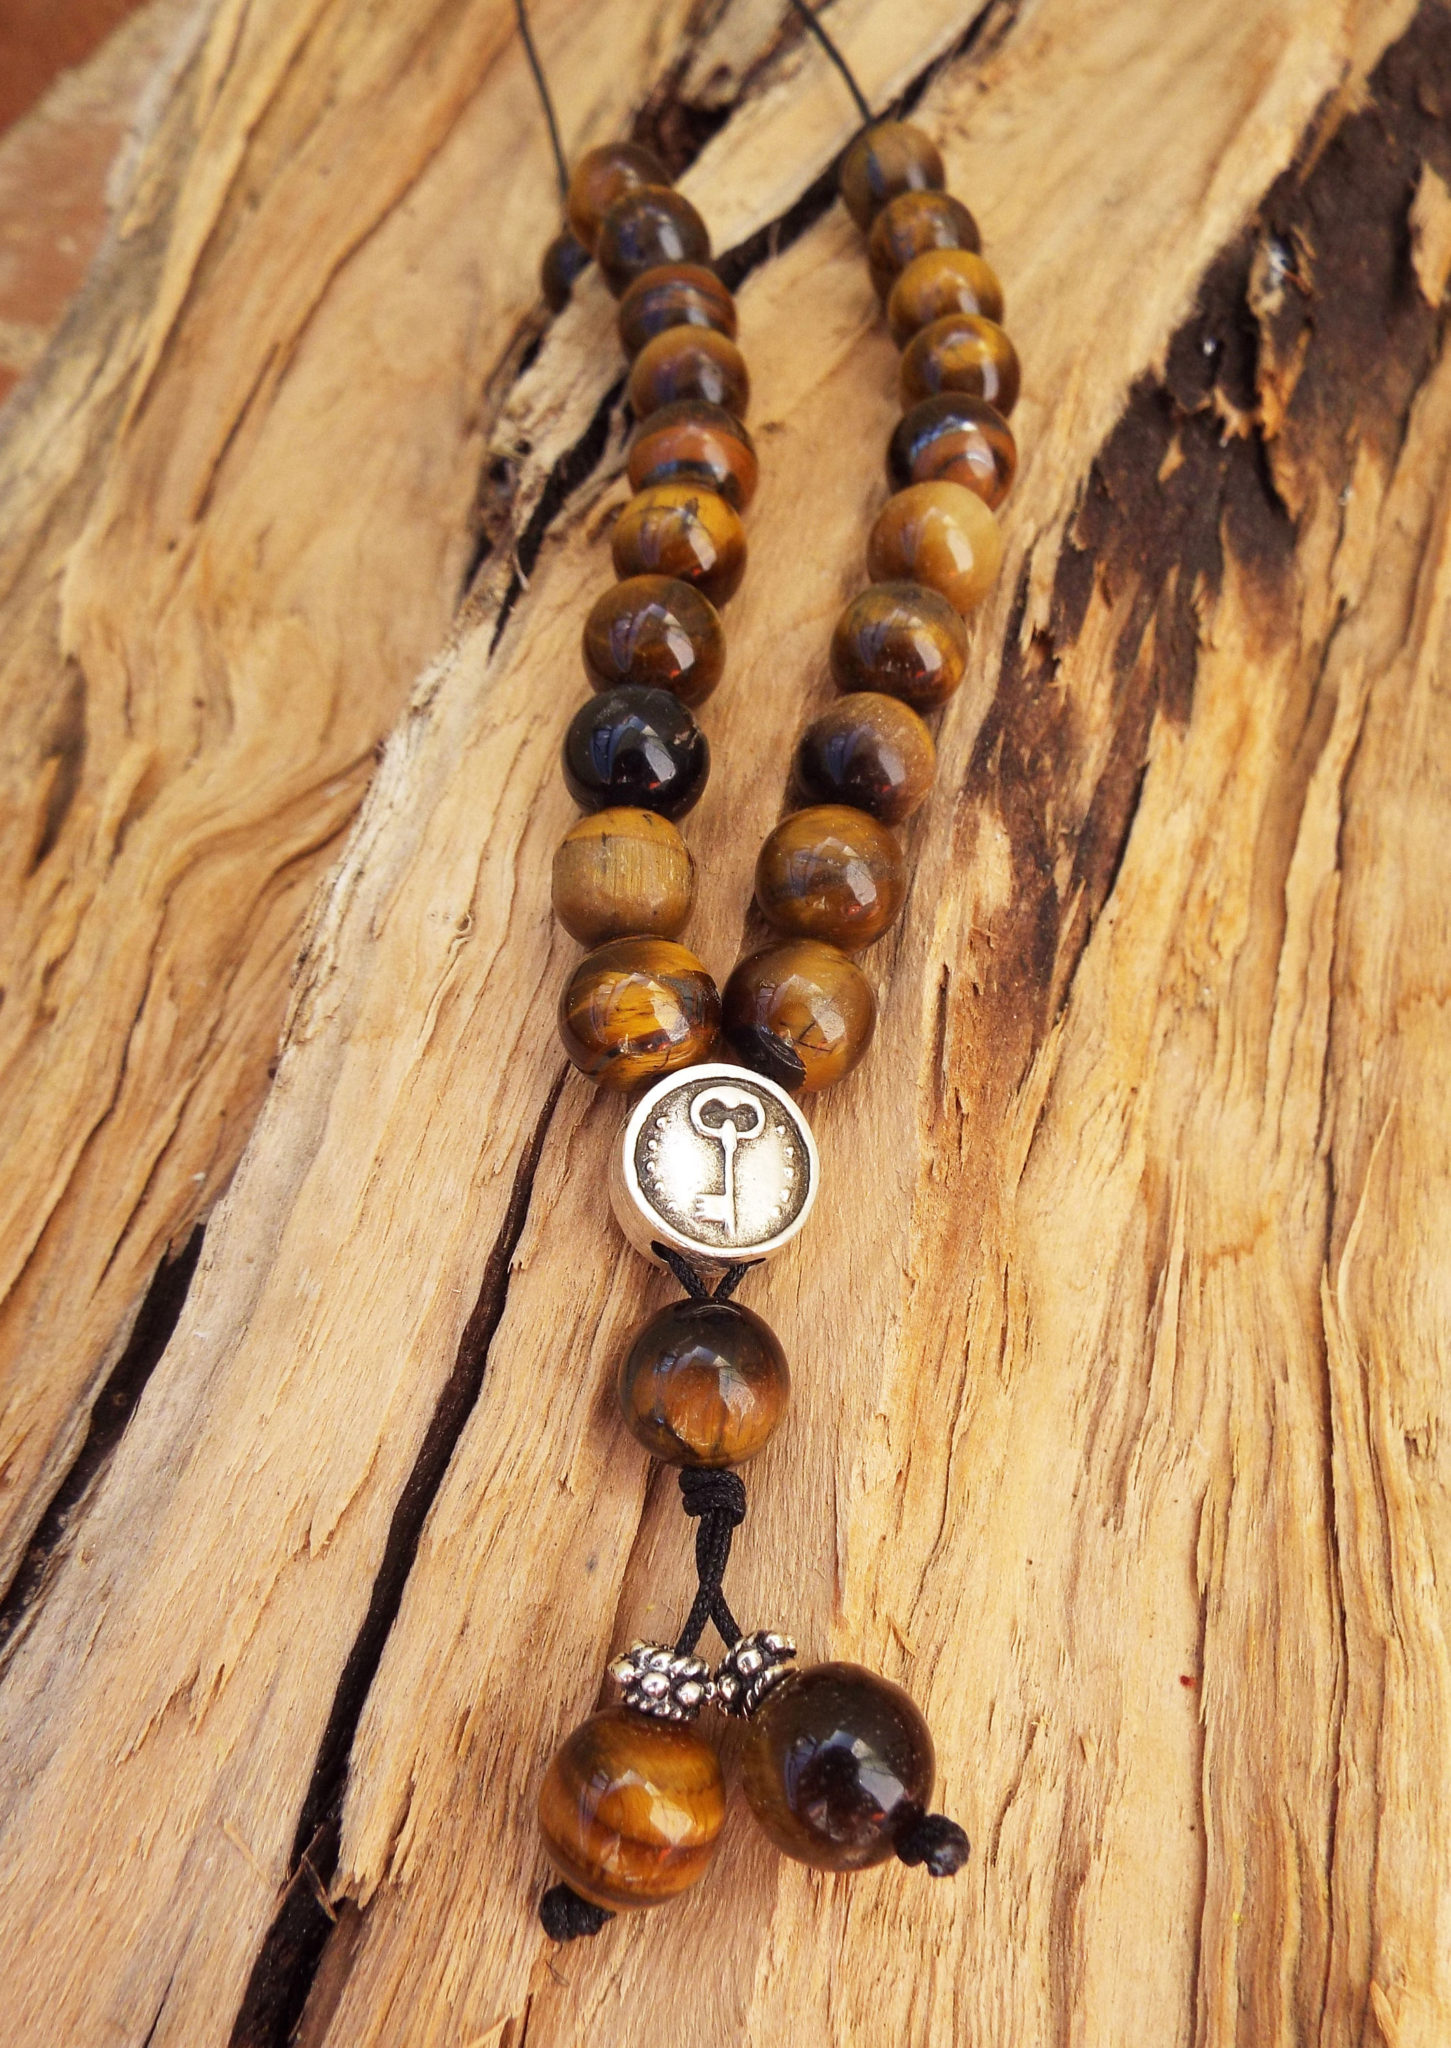 Komboloi Greek Worry Beads Tiger's Eye Prayer Beads Rosary Beads Turkish Tasbih Handmade Gemstone